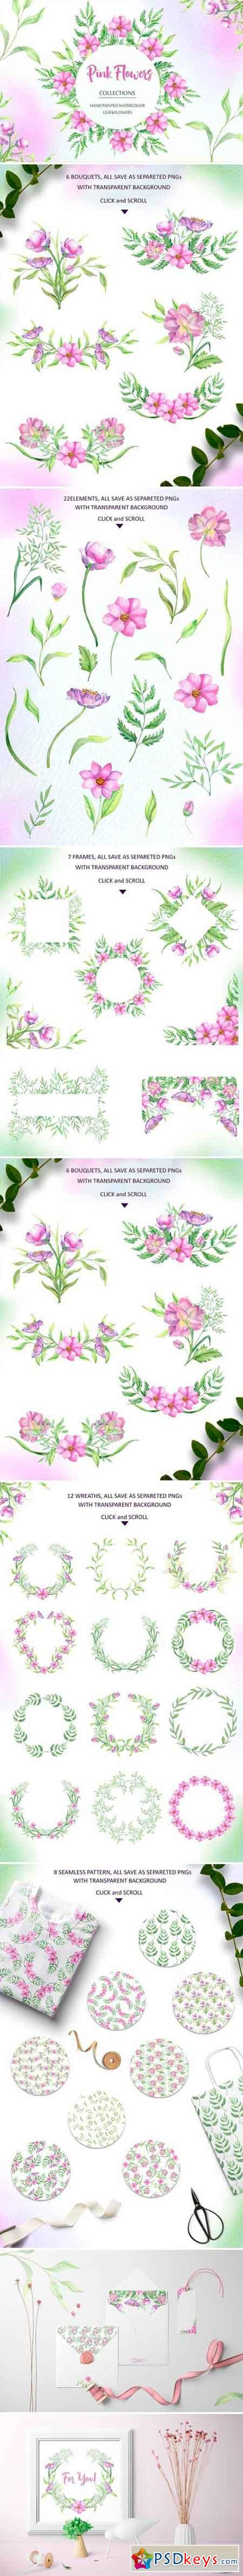 Watercolor Pink Flowers 2517885